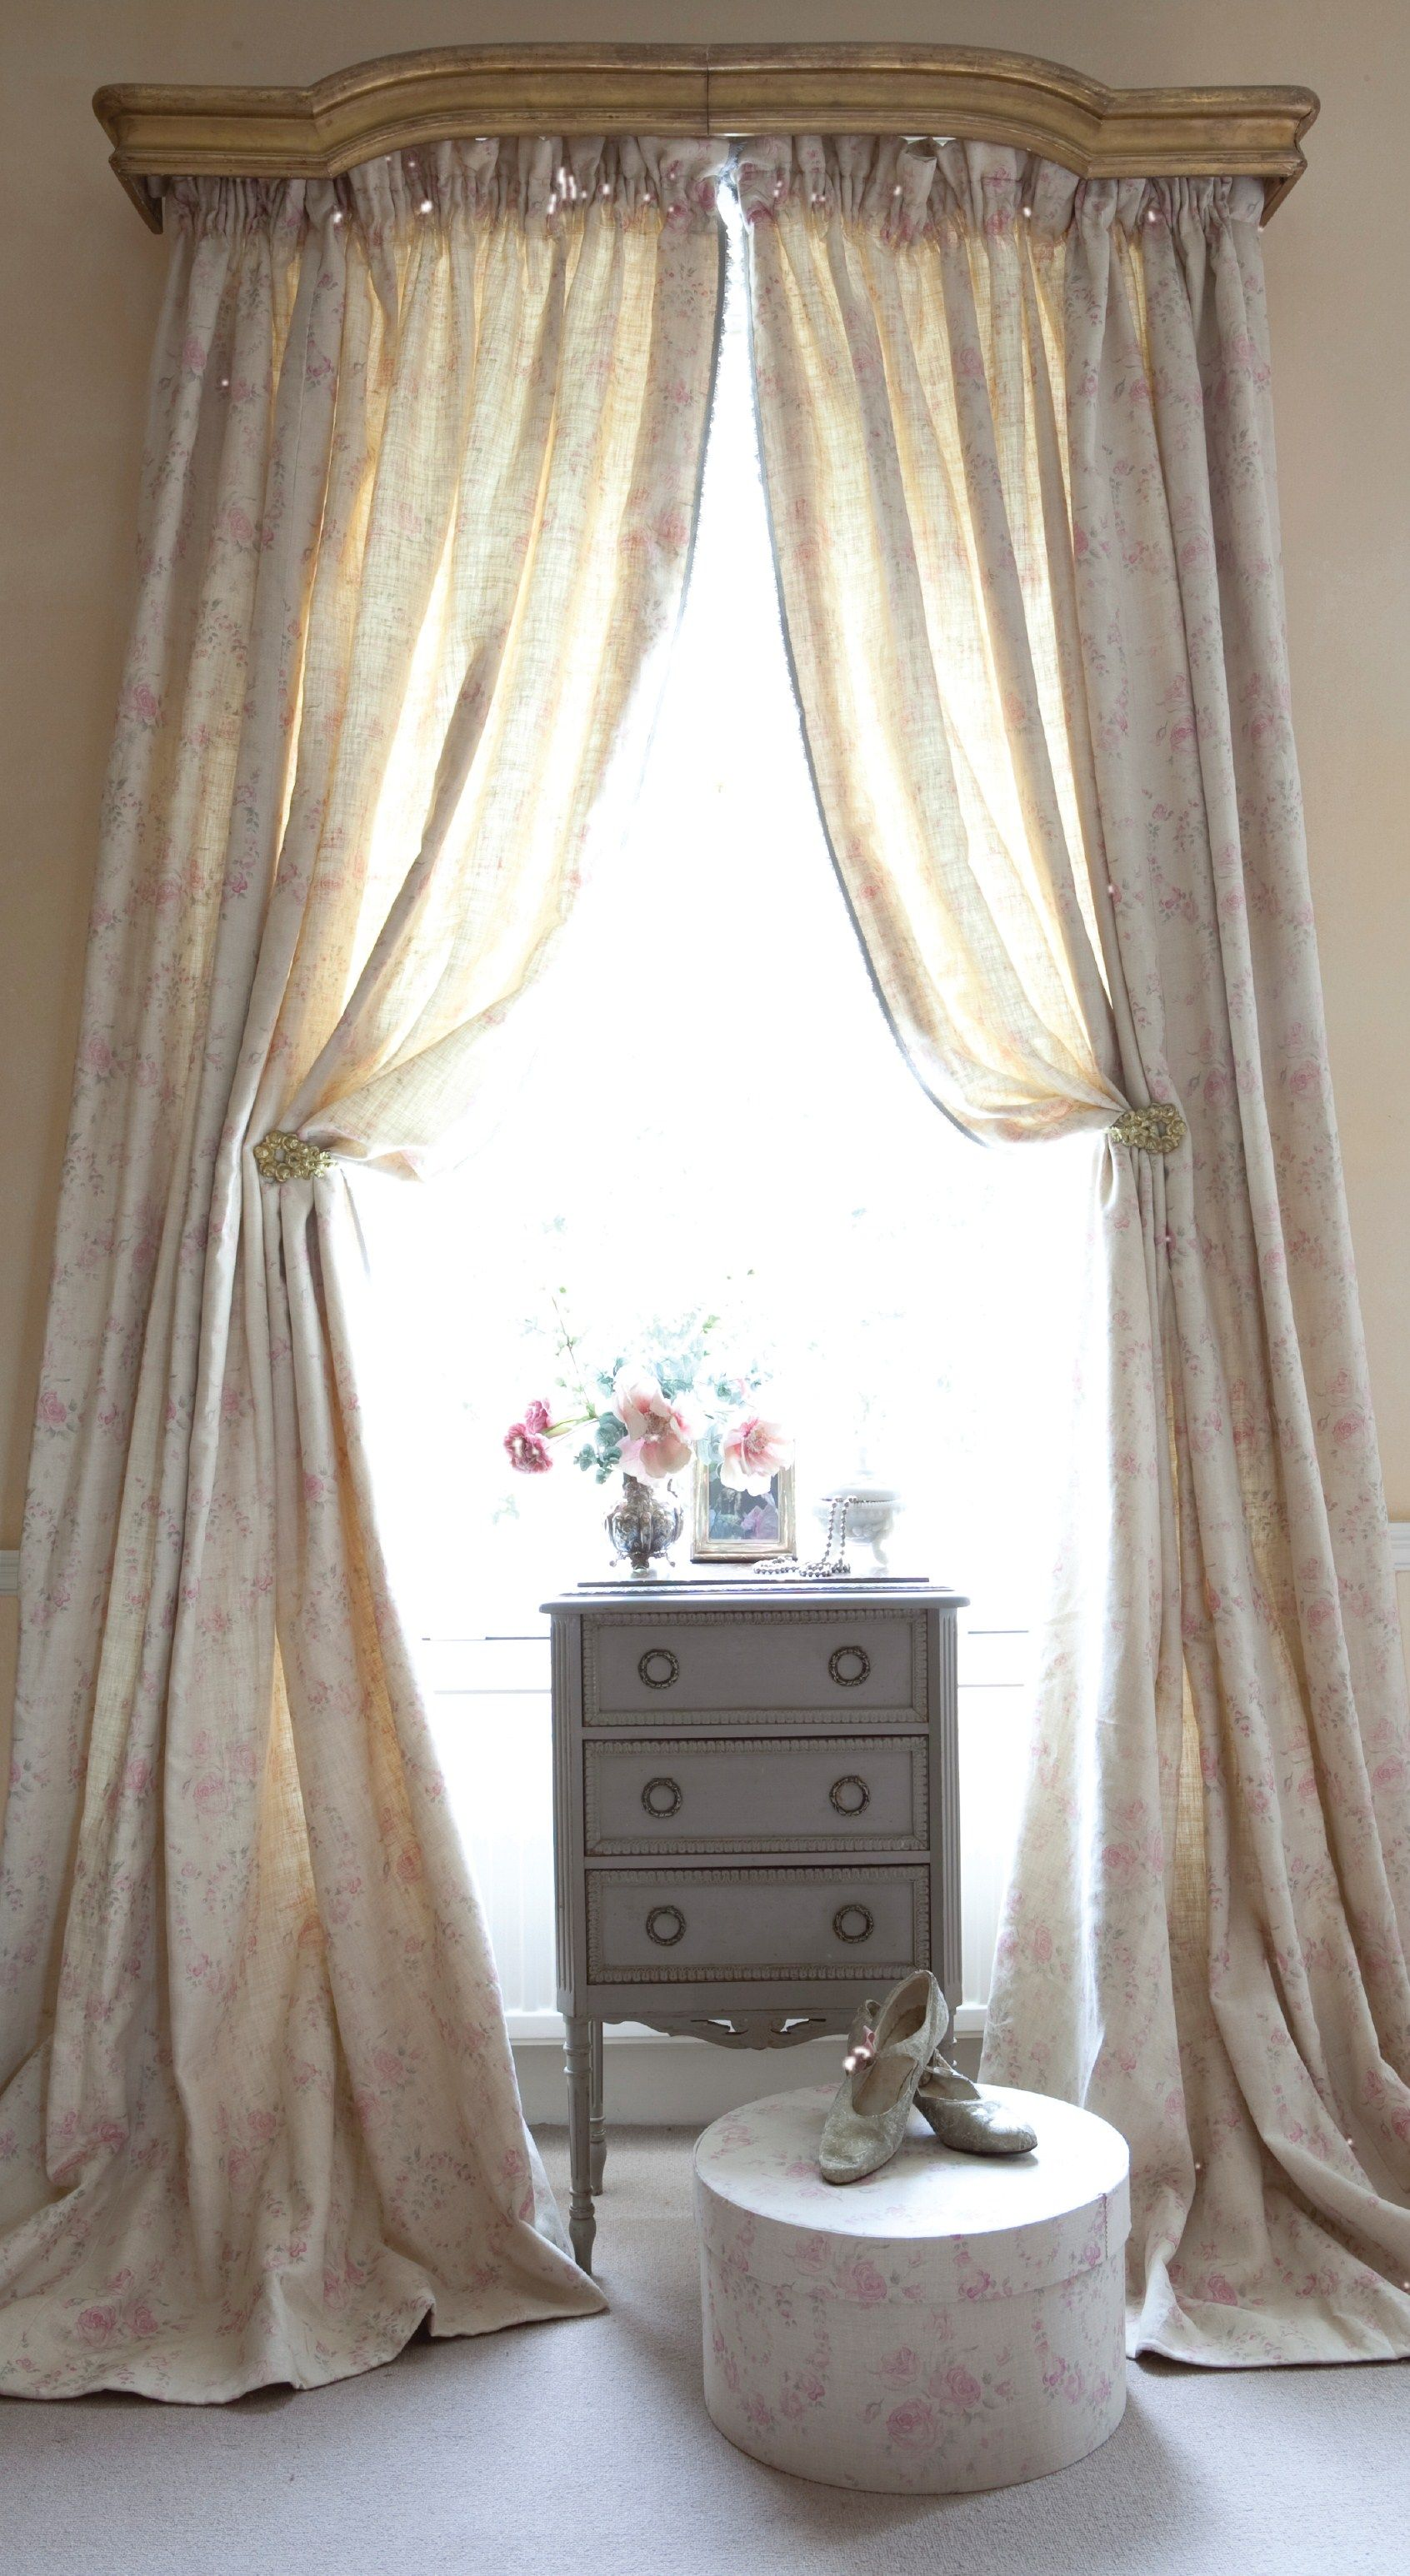 There S Something Weird About These Long Curtains That Only Bunch Up Partially When You Pull Them Aside It Seems Very H Classic Curtains Curtains Vintage Room